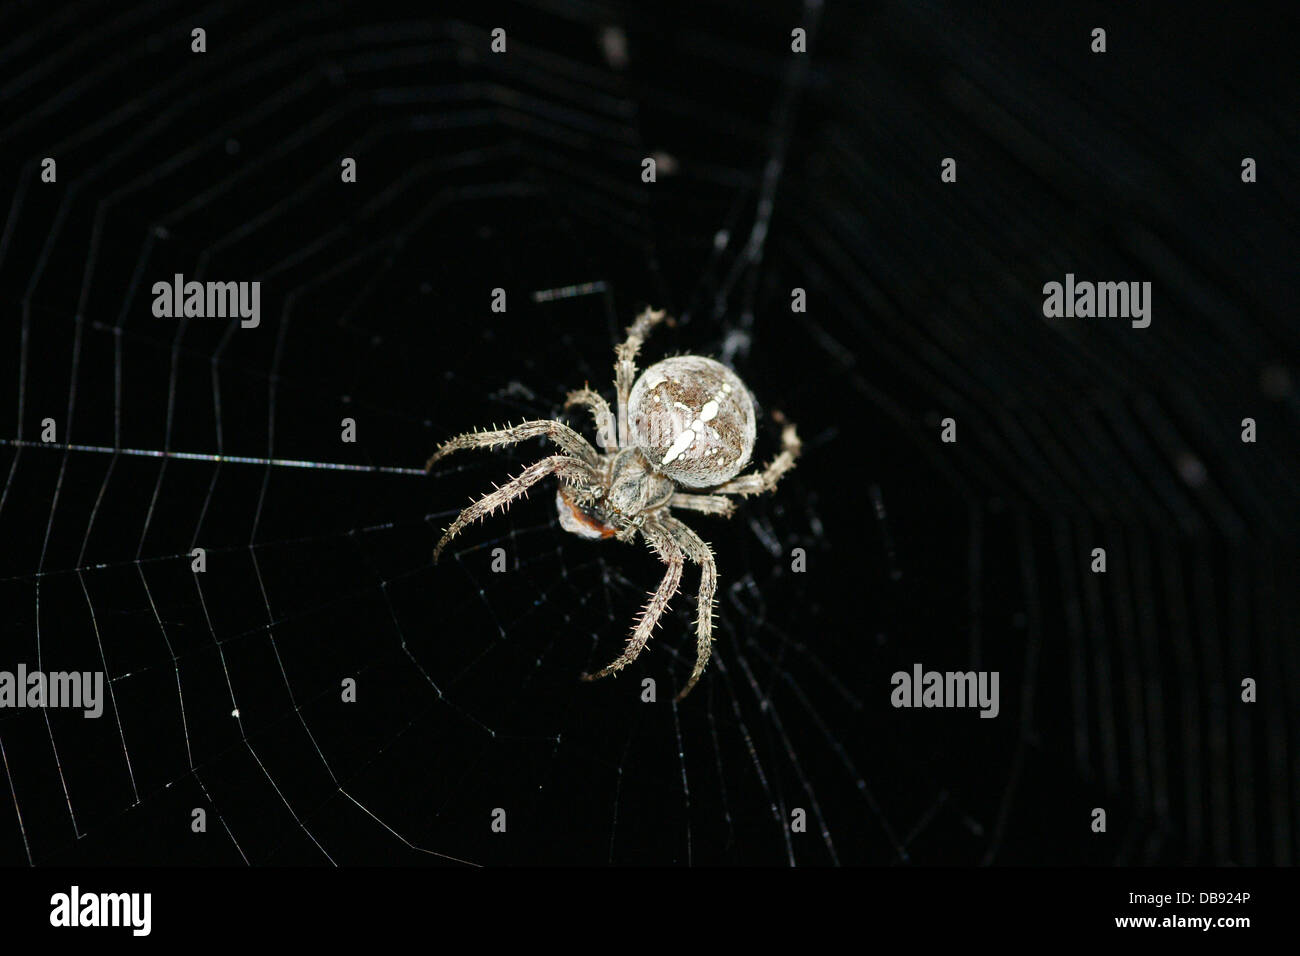 Macro image of Spider with white cross on its back - Stock Image